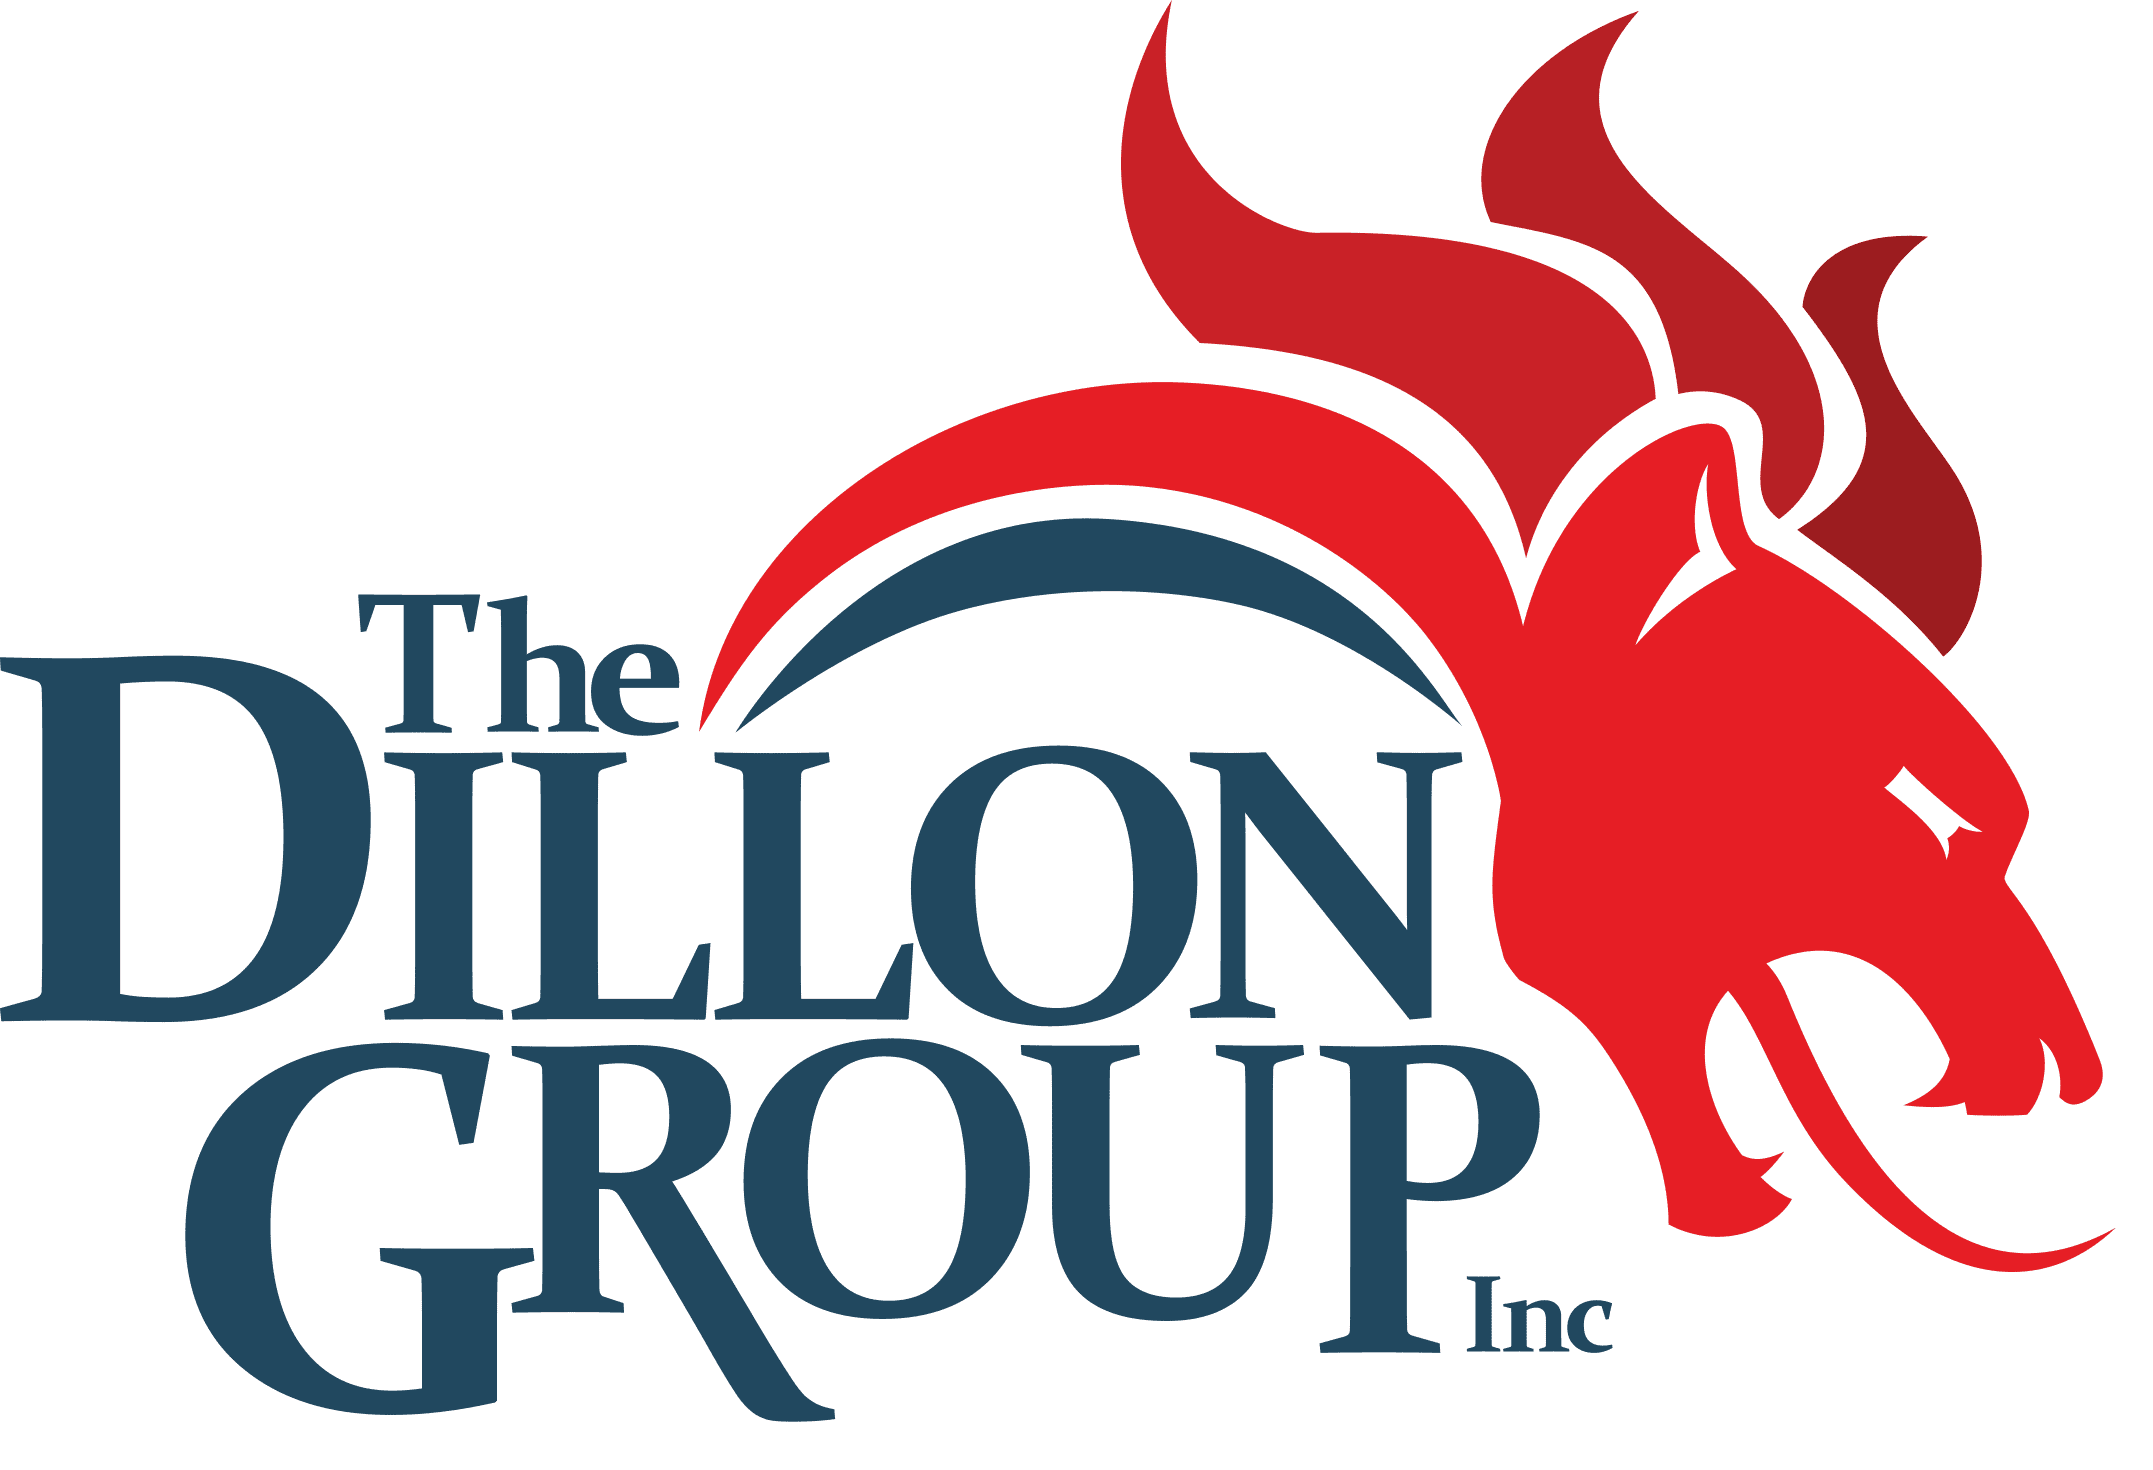 The Dillon Group